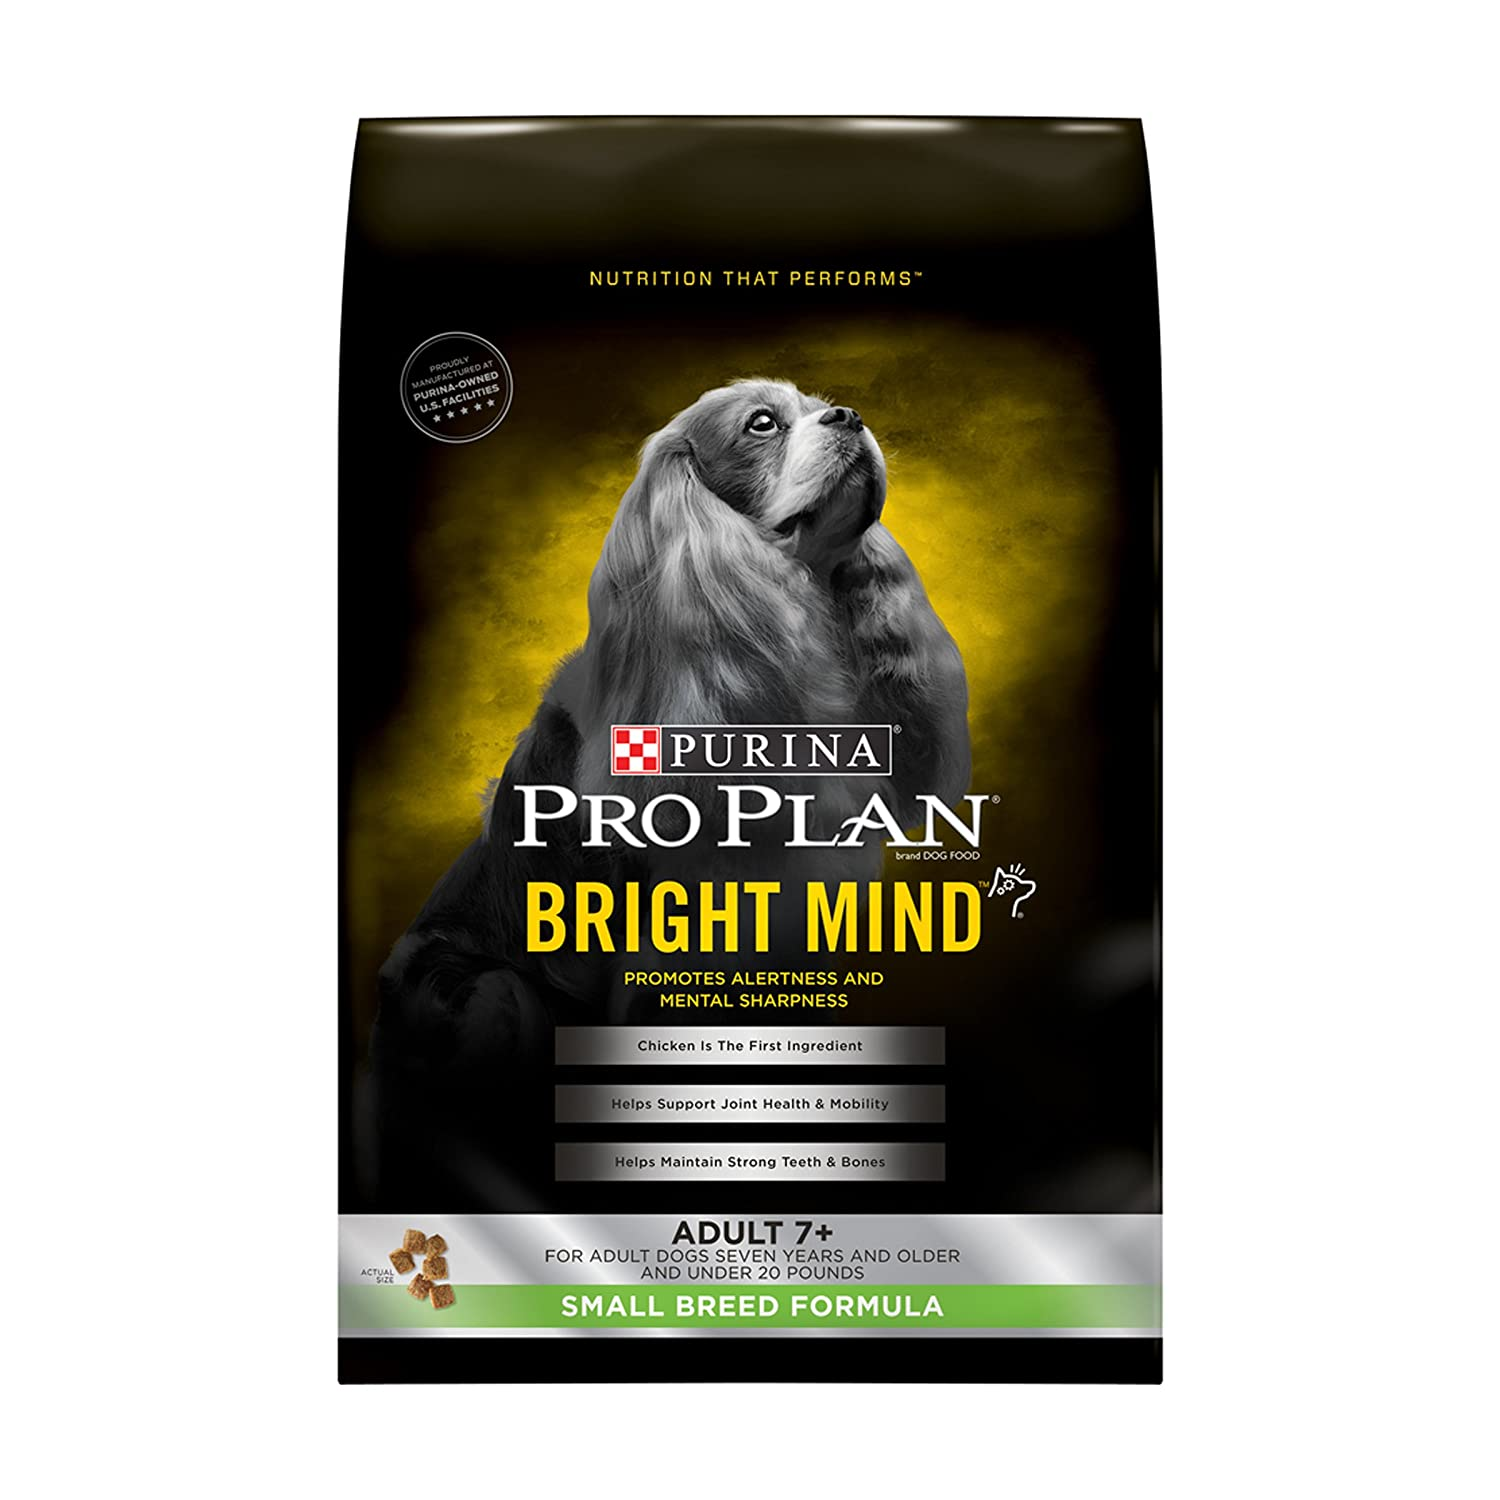 Purina Pro Plan BRIGHT MIND Formula Adult 7+ Dry Dog Food